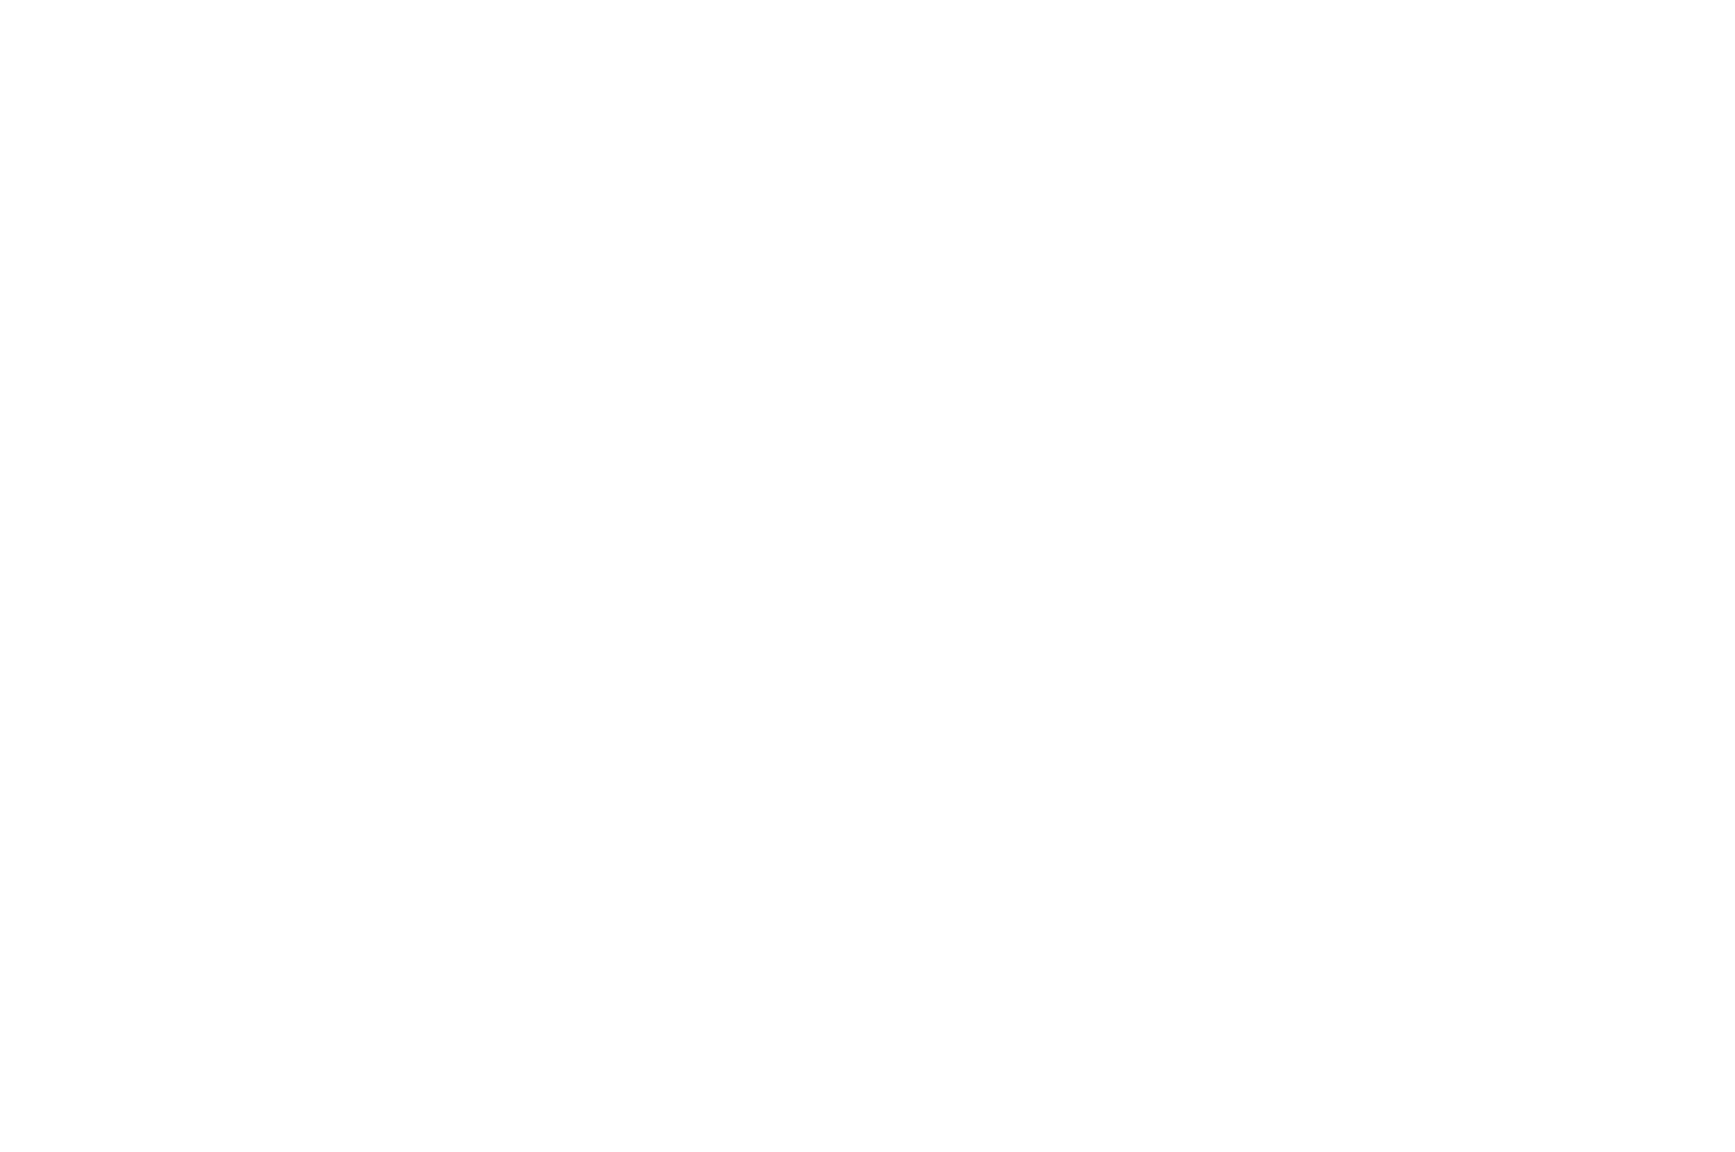 OFFICIAL SELECTION - StoryPros International Screenplay Contest - 2019